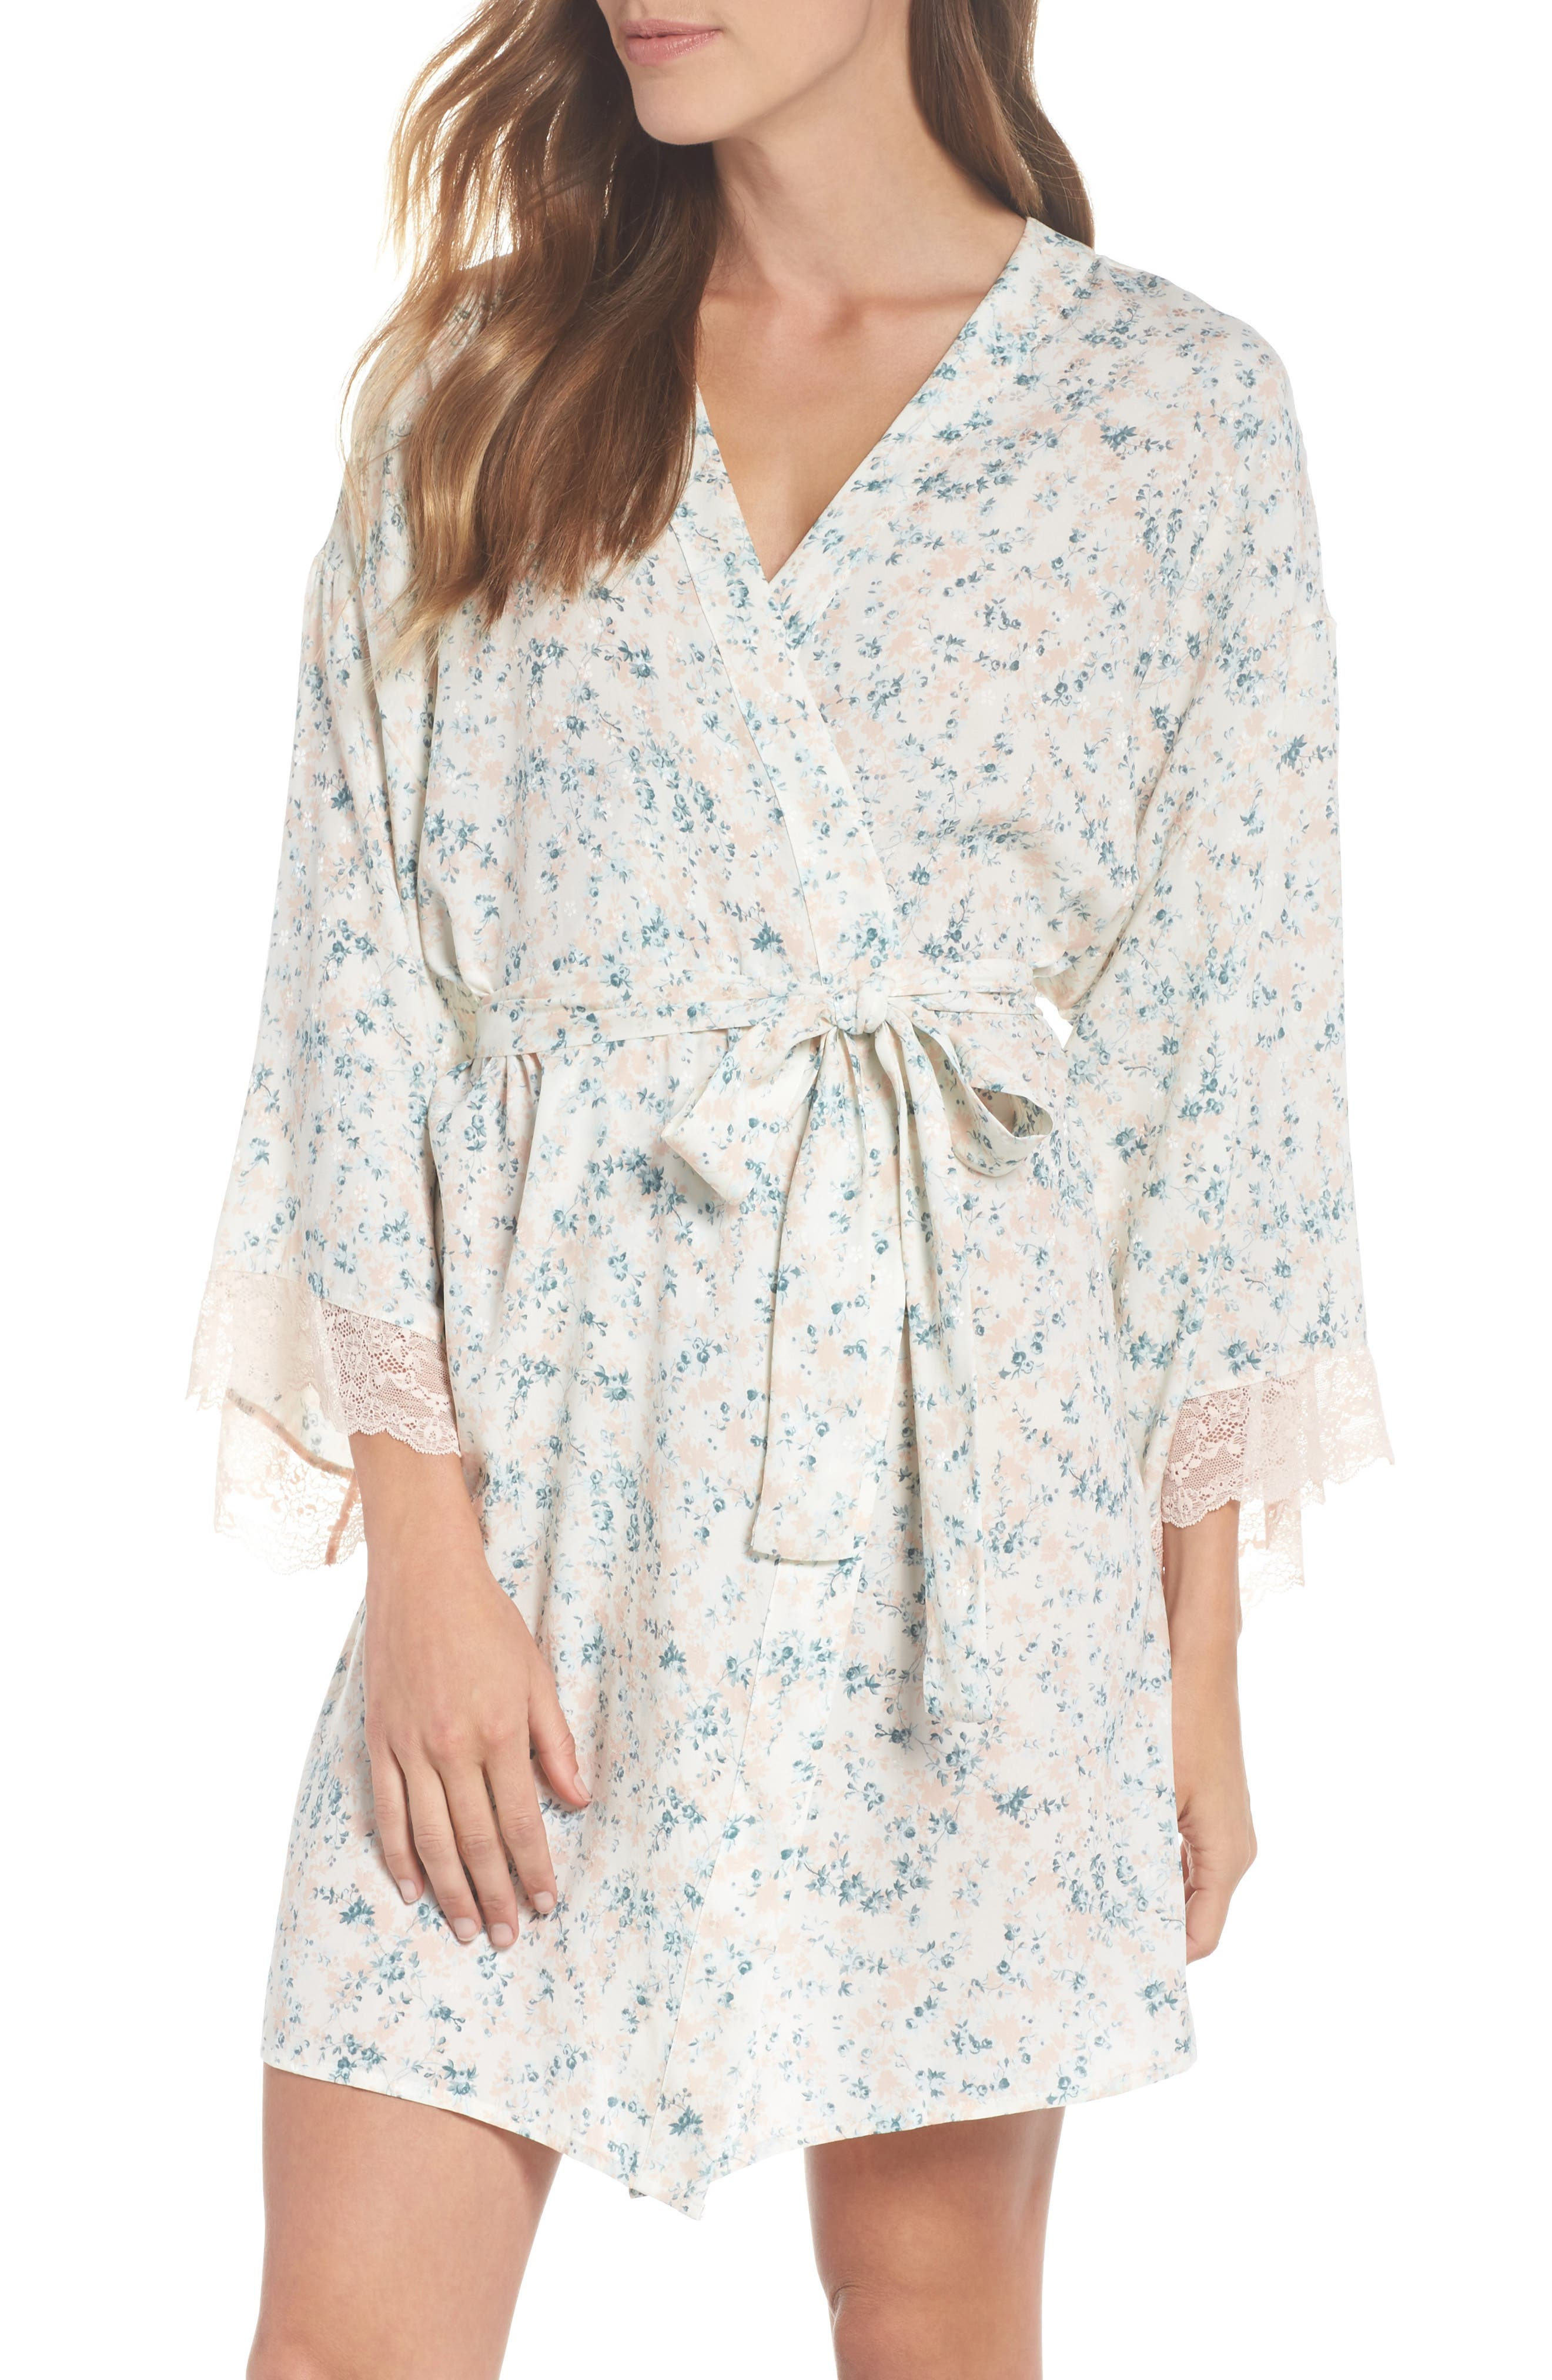 Lily Stretch Silk Short Robe,                             Main thumbnail 1, color,                             Ivory Floral Print